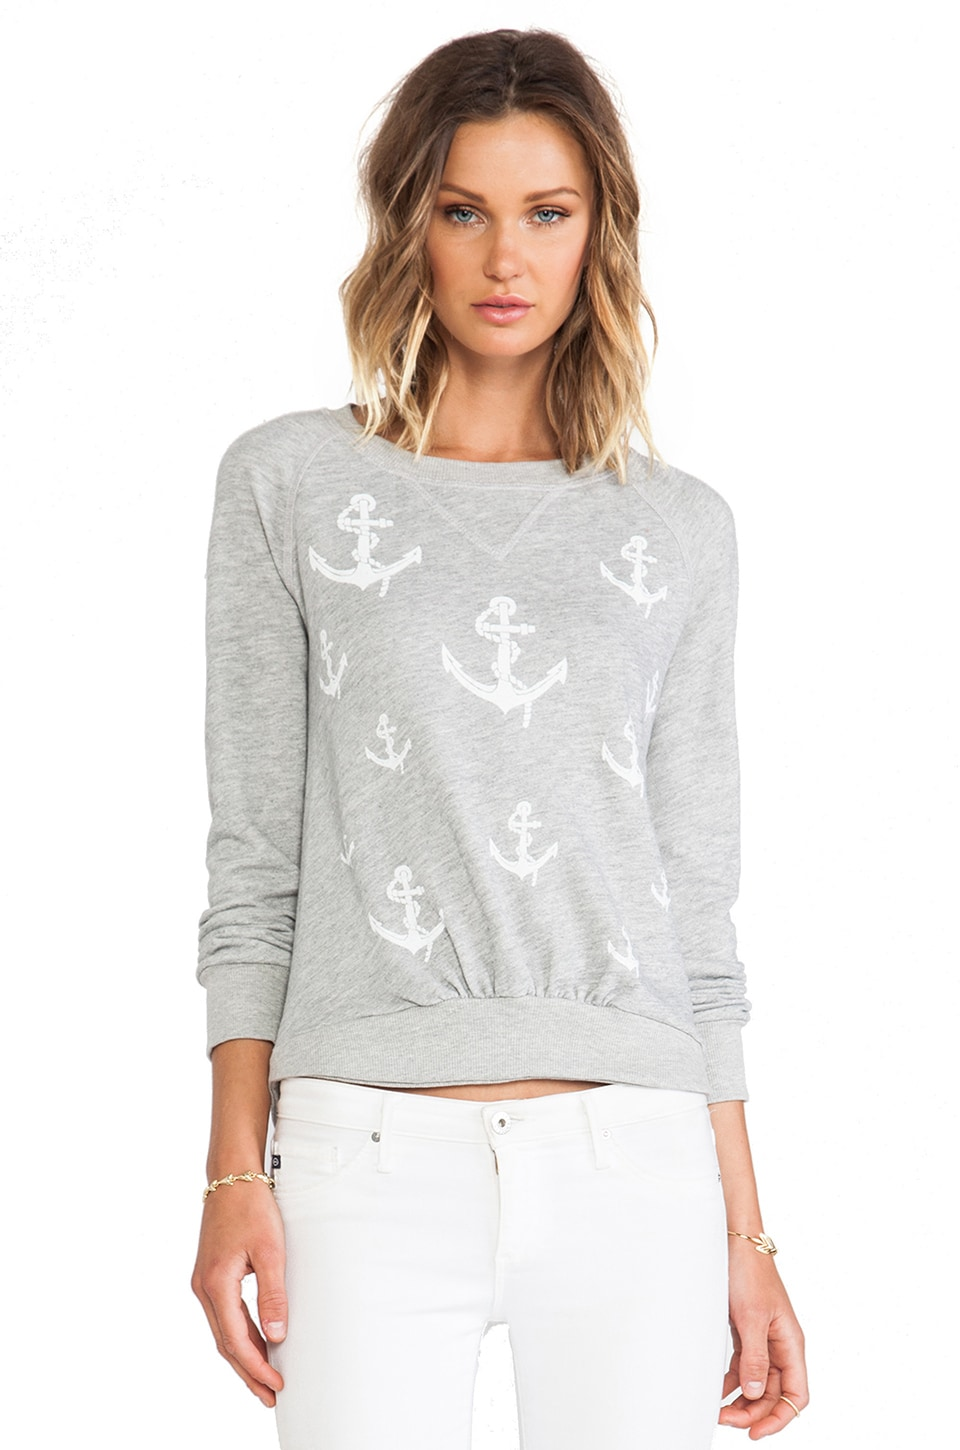 291 Anchors Pullover Crew in Heather Grey